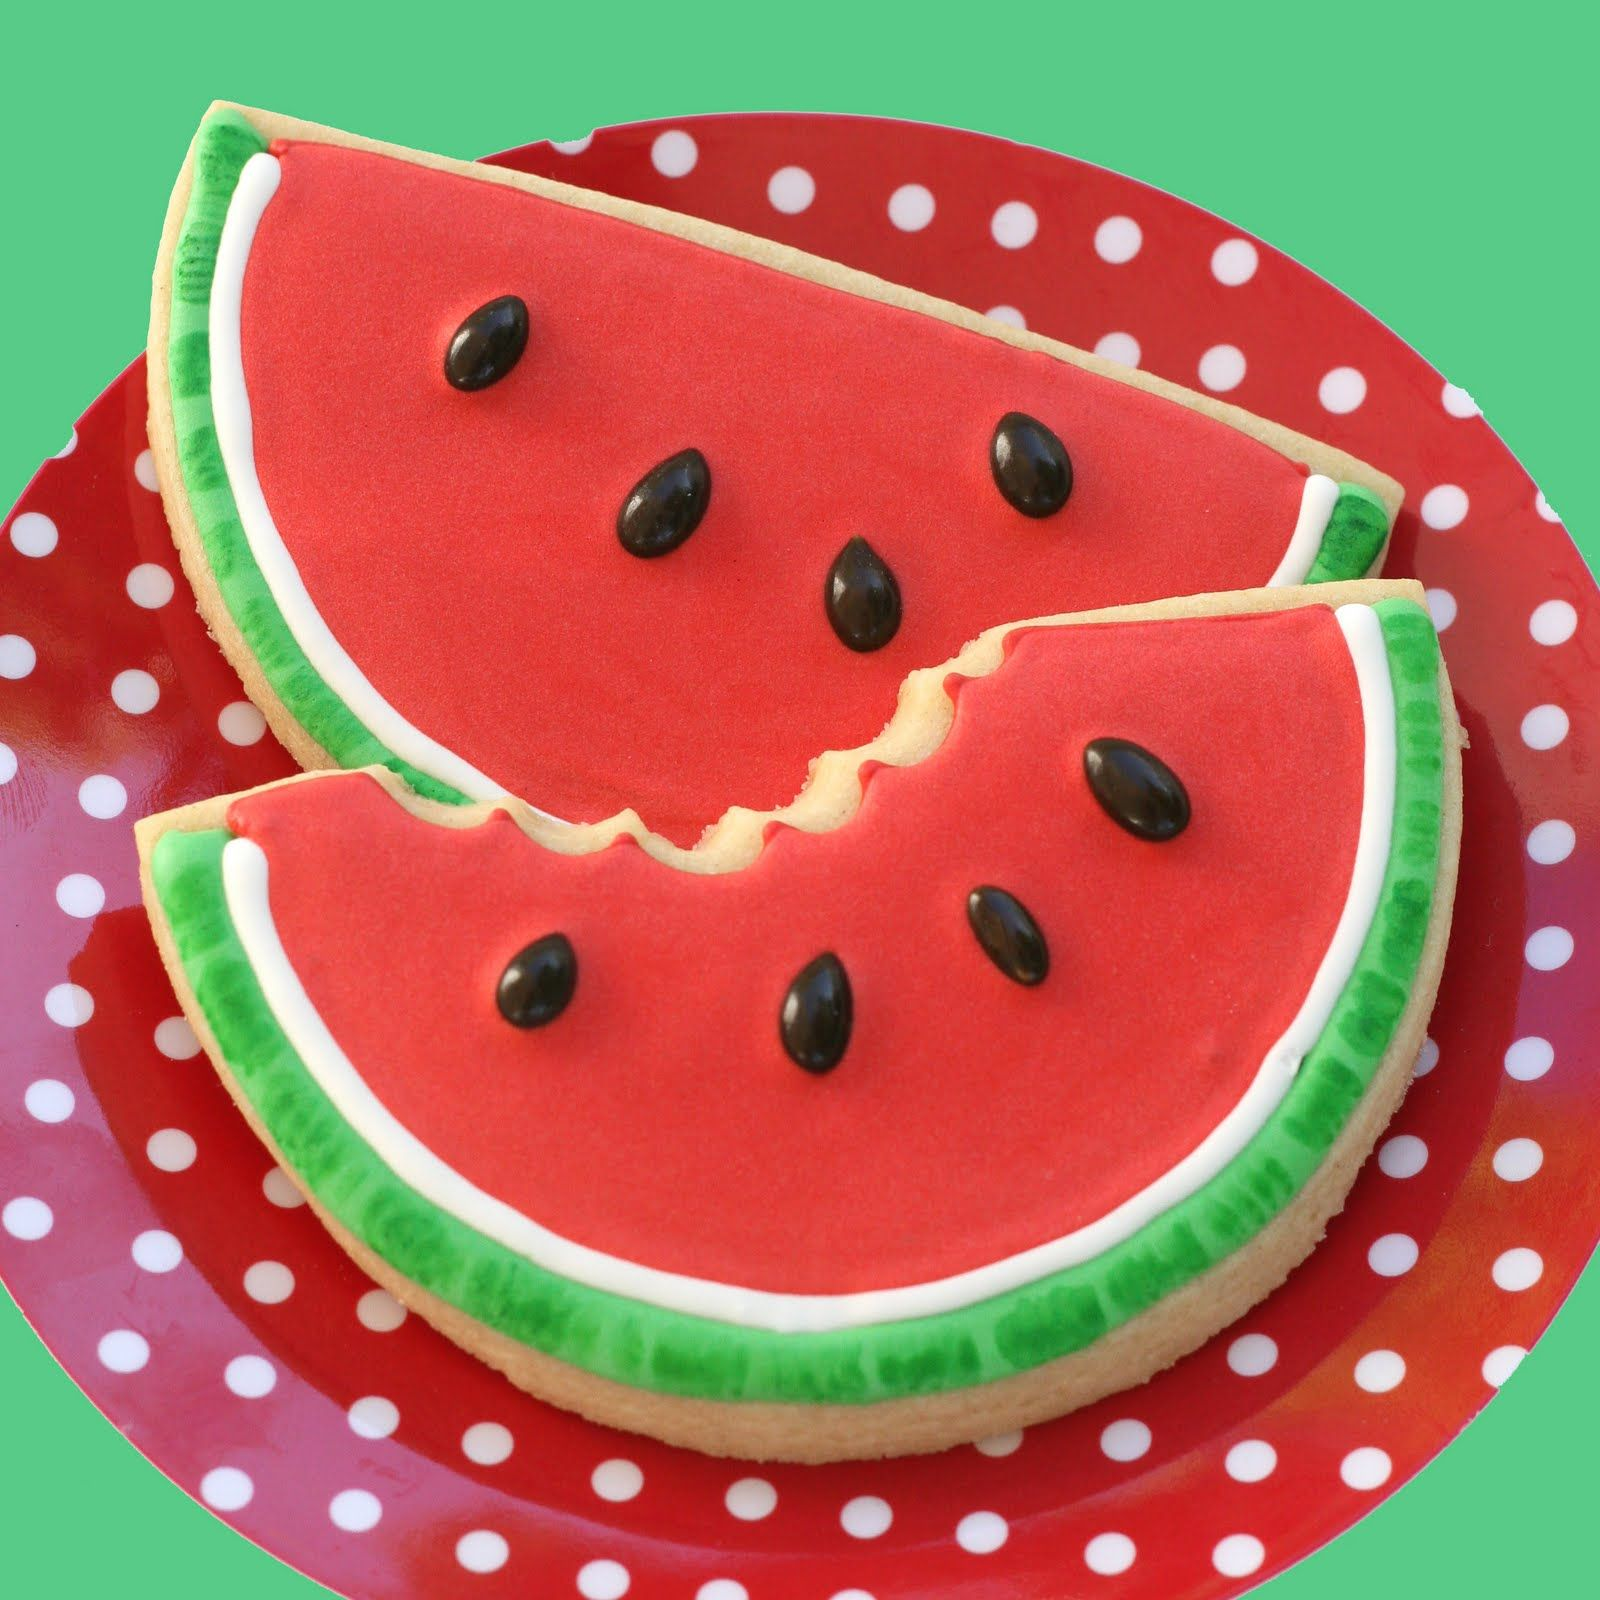 Sandias Decoradas Watermelon Shaped Cookies Cup Cakes Y Galletas